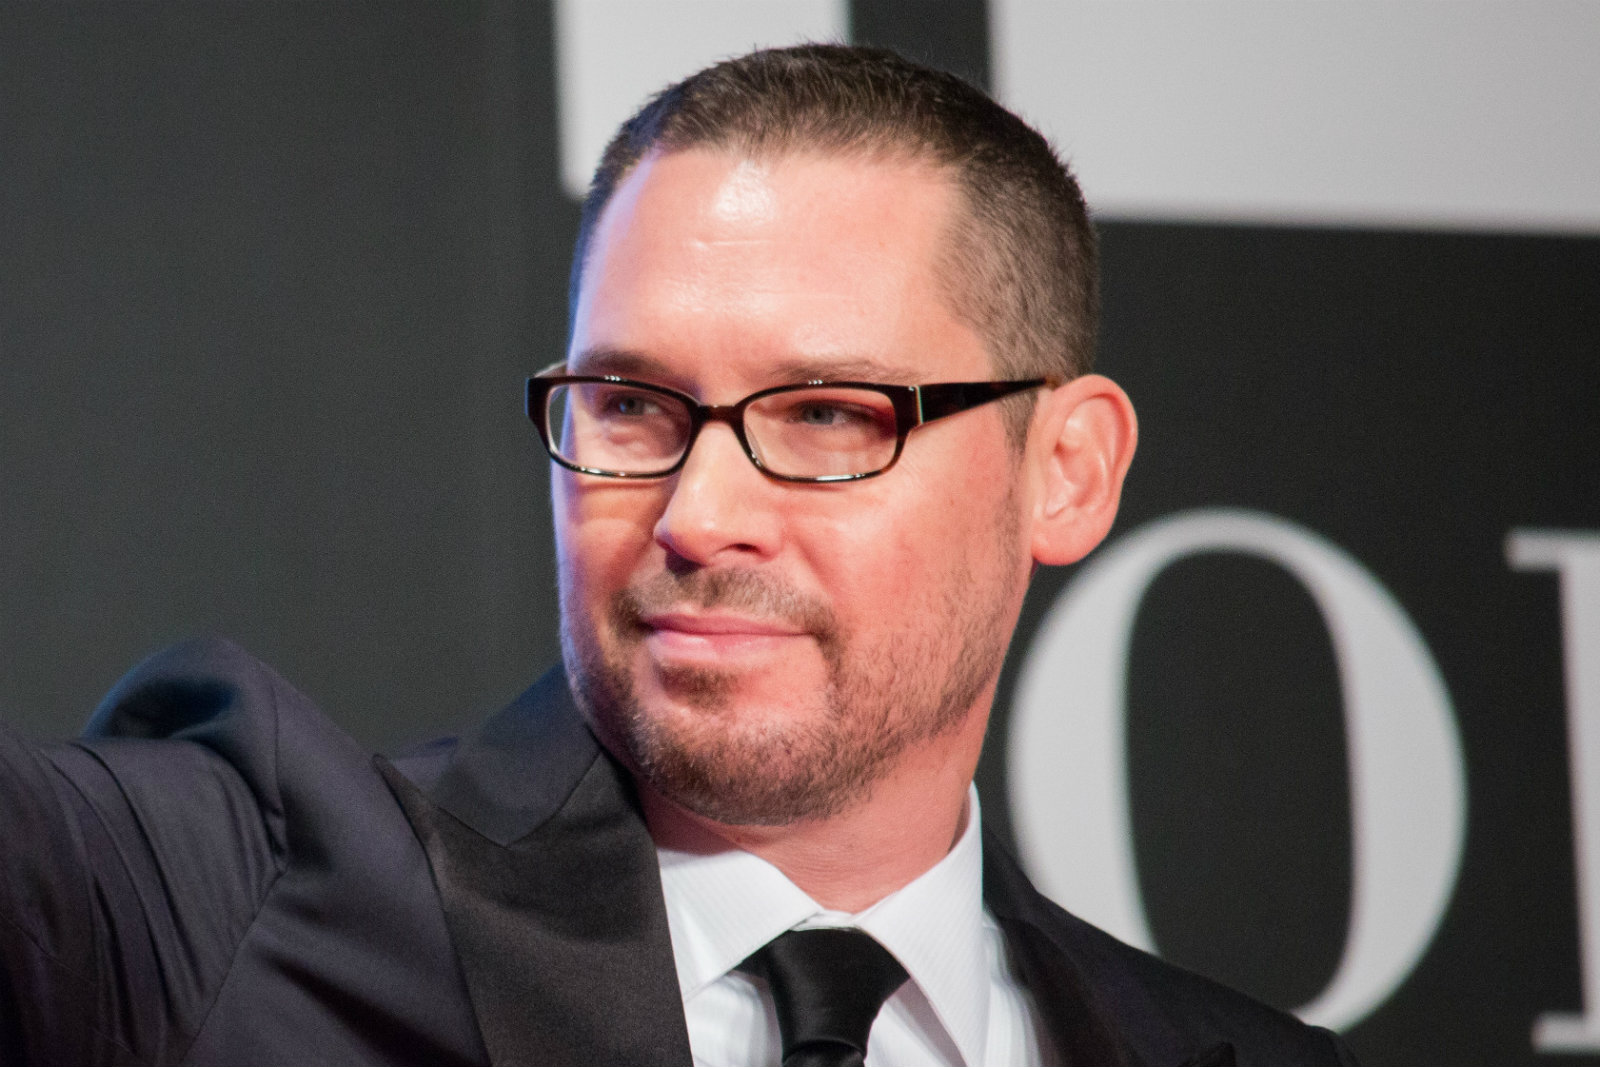 Bryan Singer denies multiple accusations of sexual misconduct with underage boys